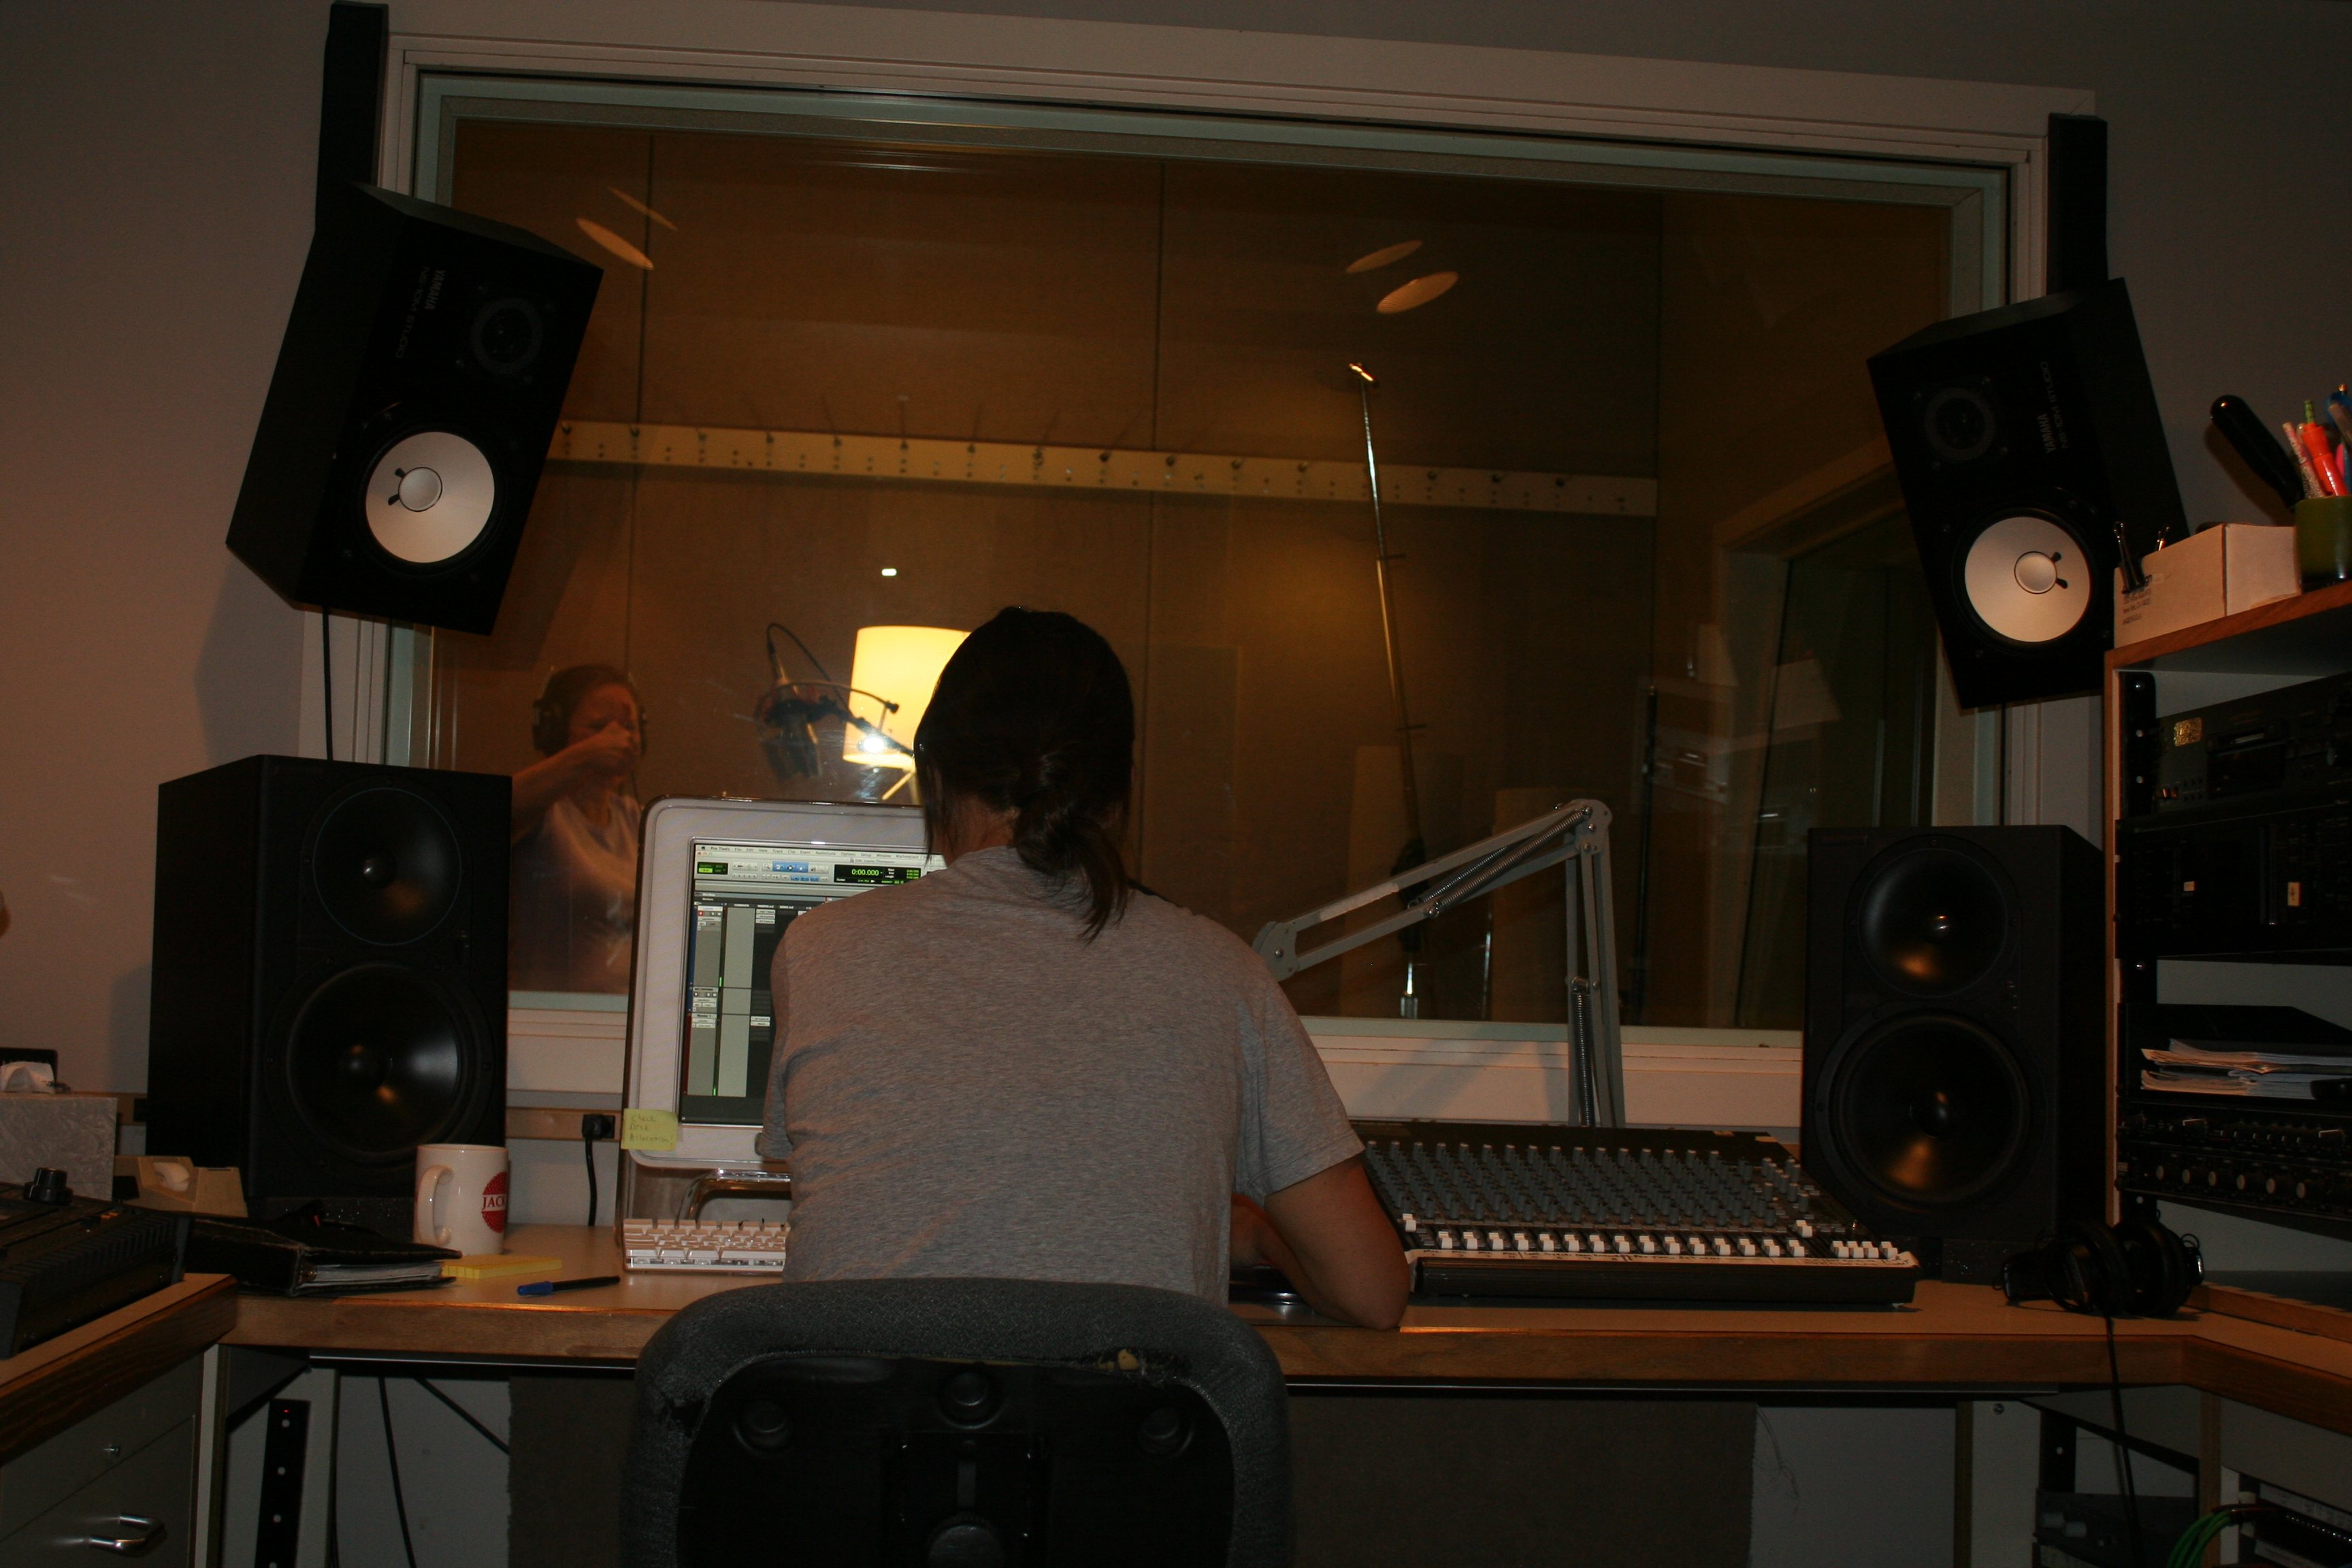 Laurie giving thumbs up at the studio recording